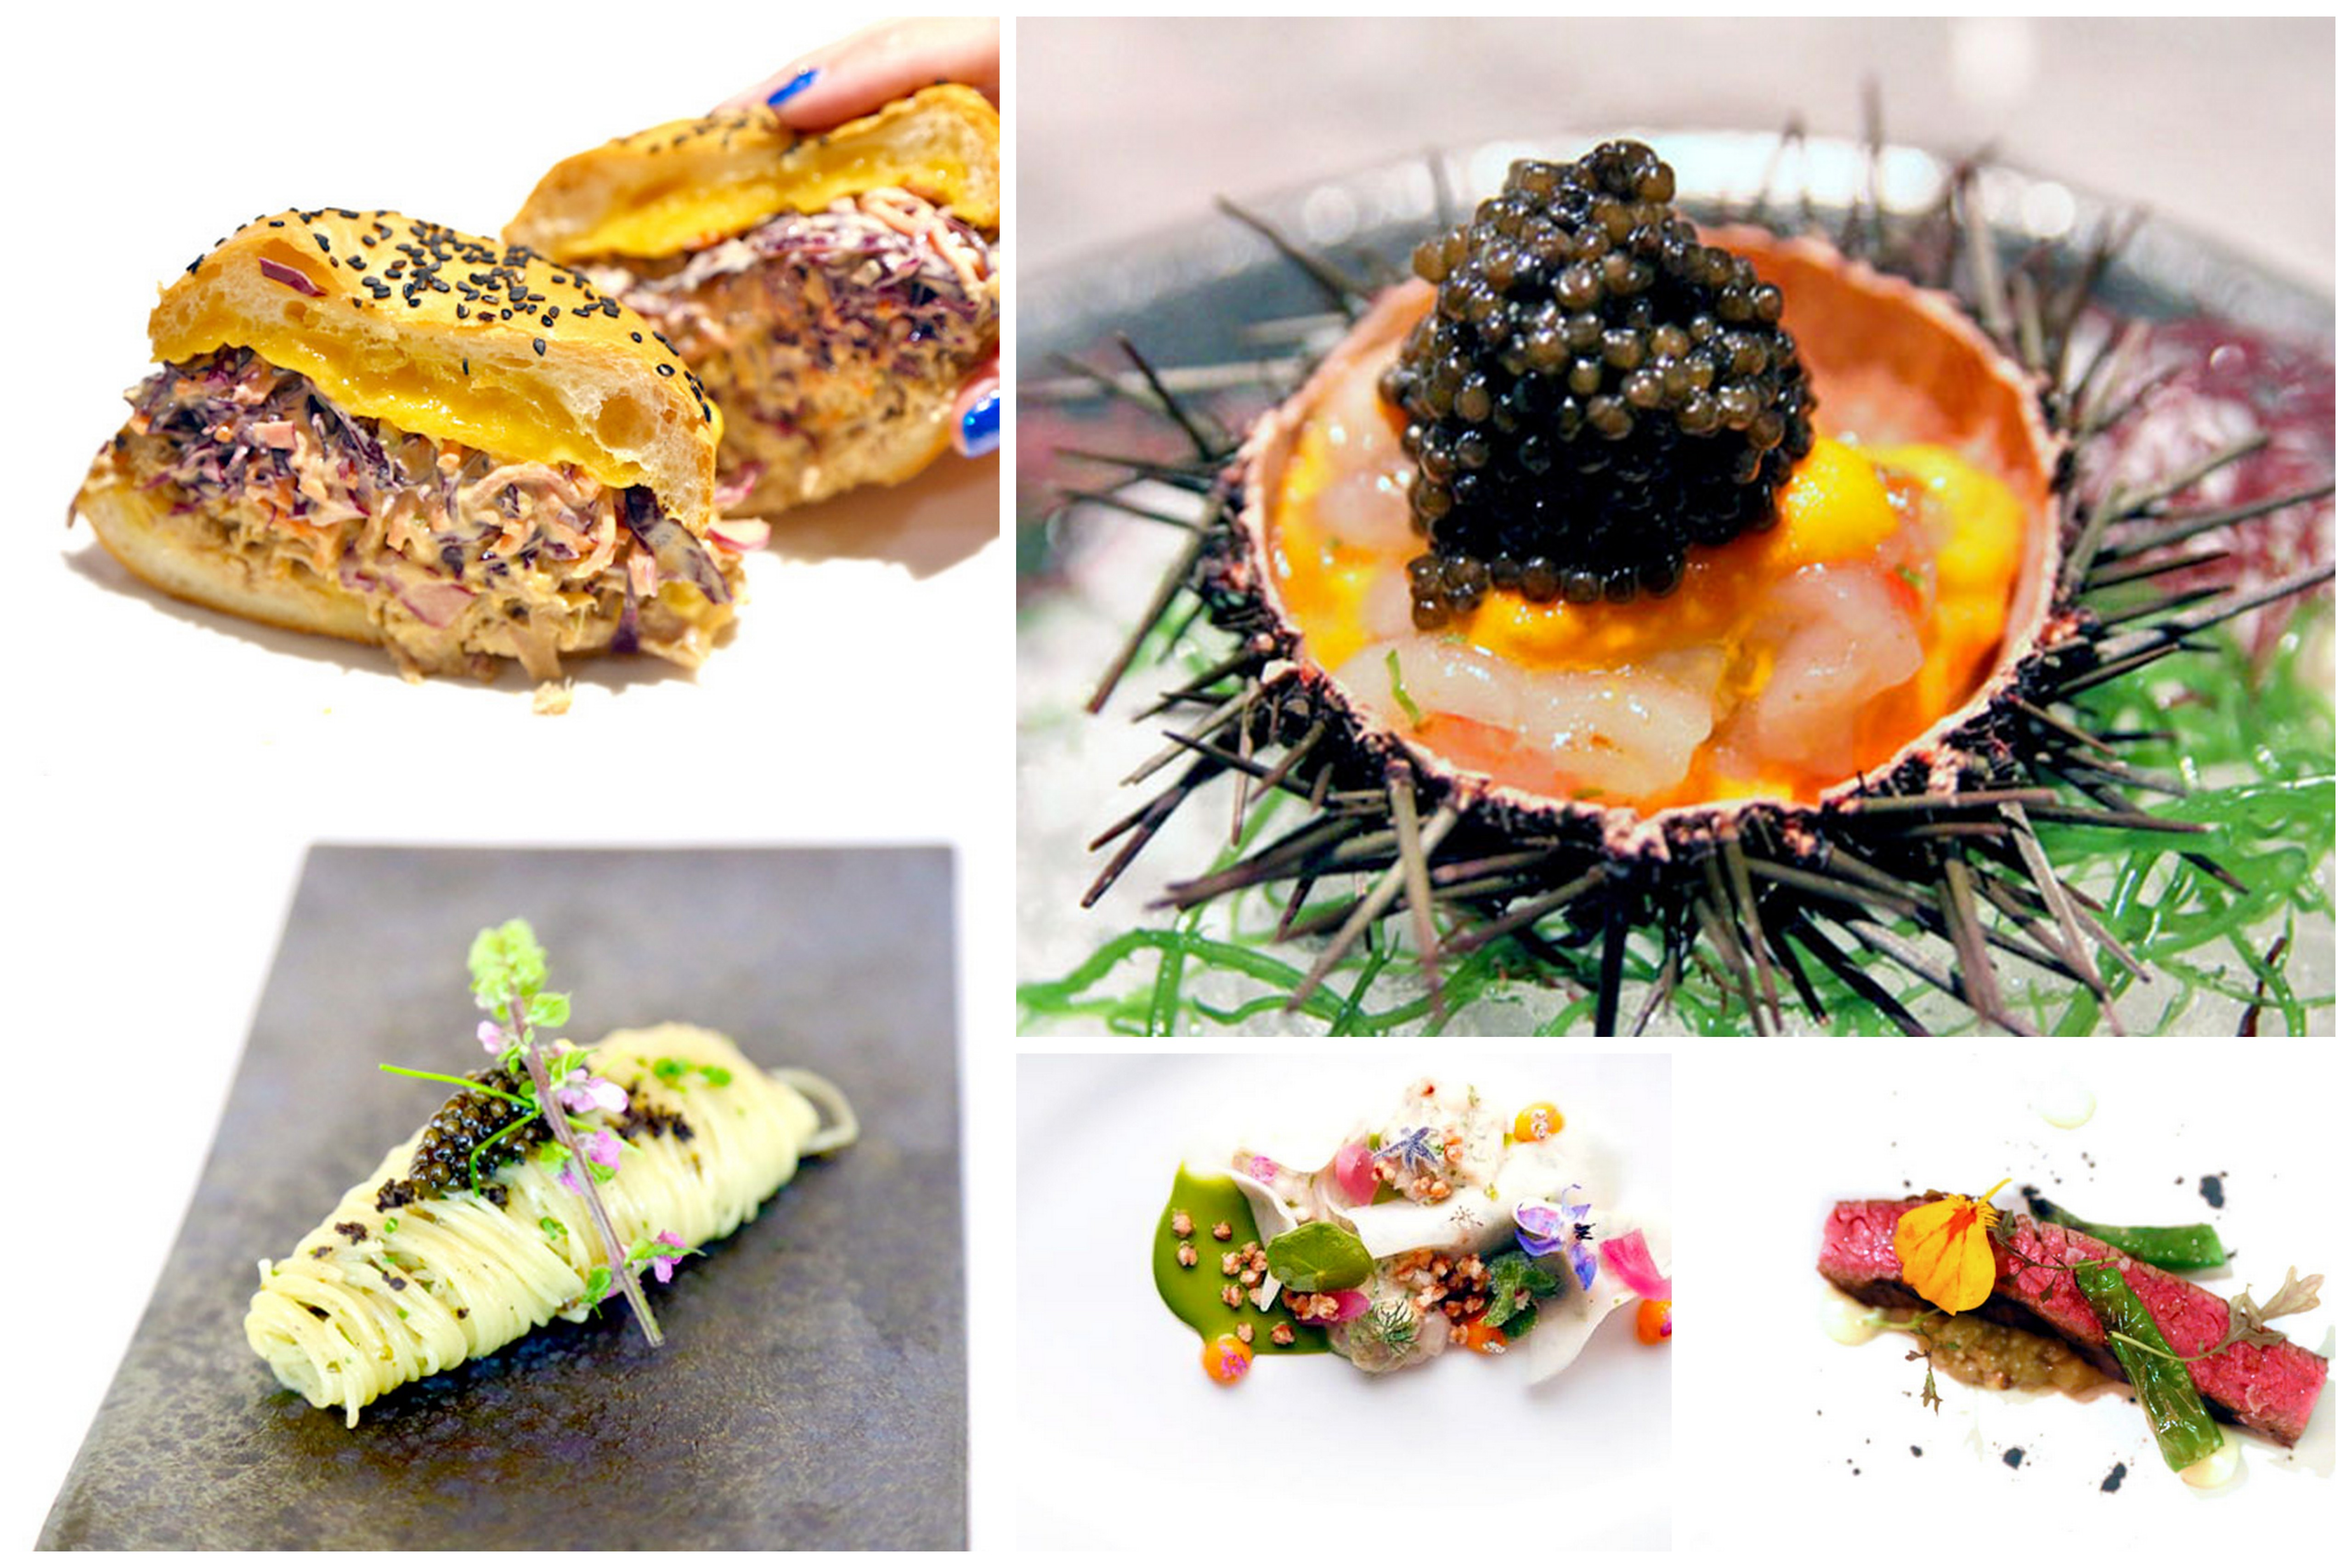 10 Best Restaurants In Singapore 2015 (And The Price Tag)